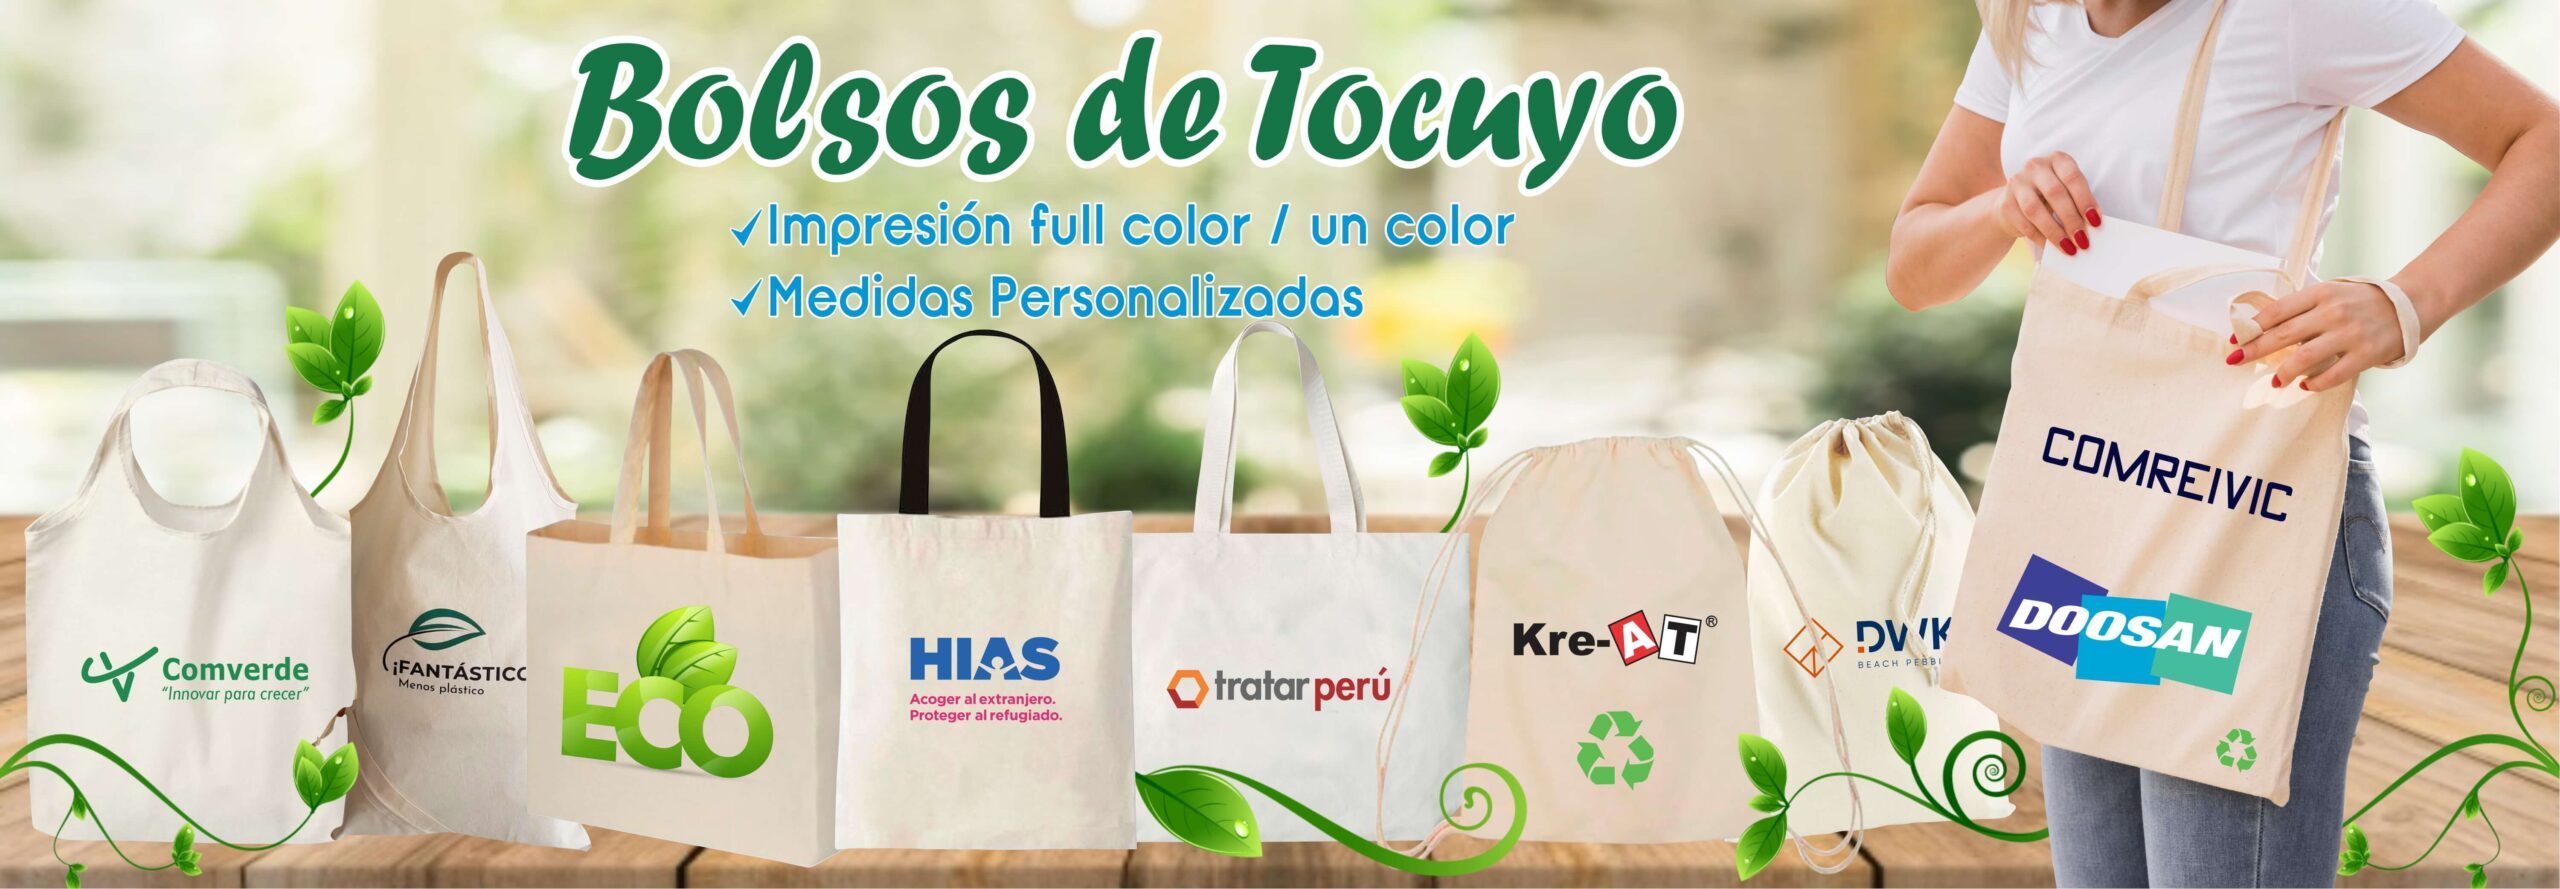 FLAYER-BOLSOS-TOCUYO-1-scaled